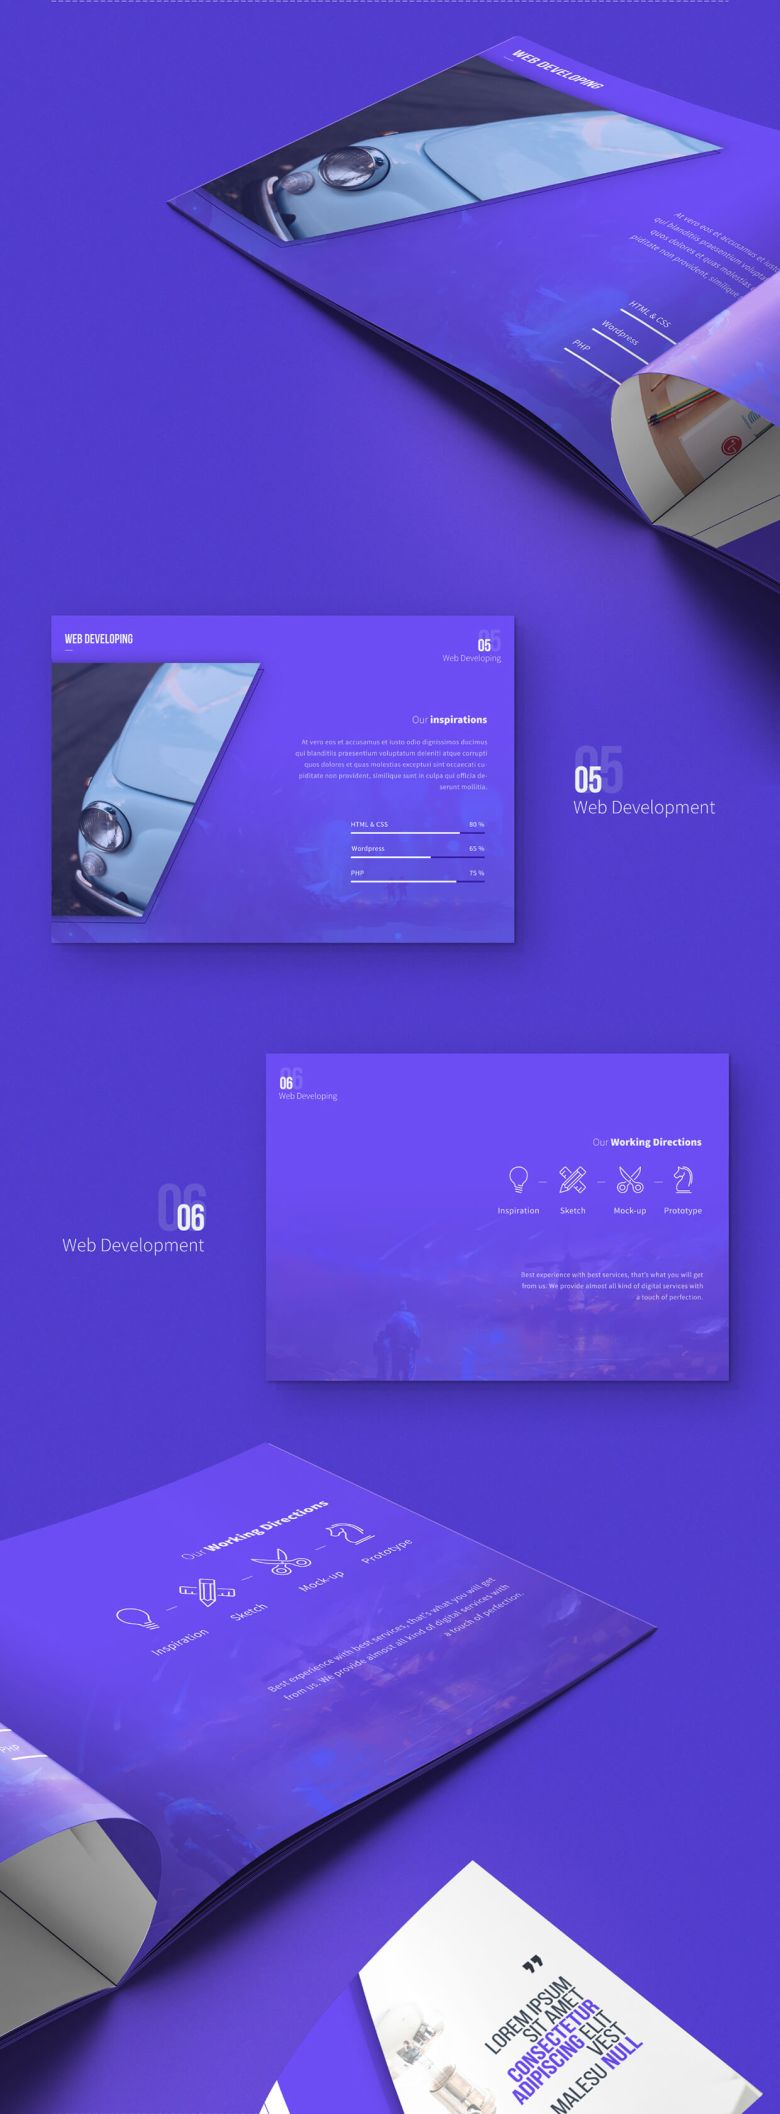 carsive 18 pages brochures template 02 (1)